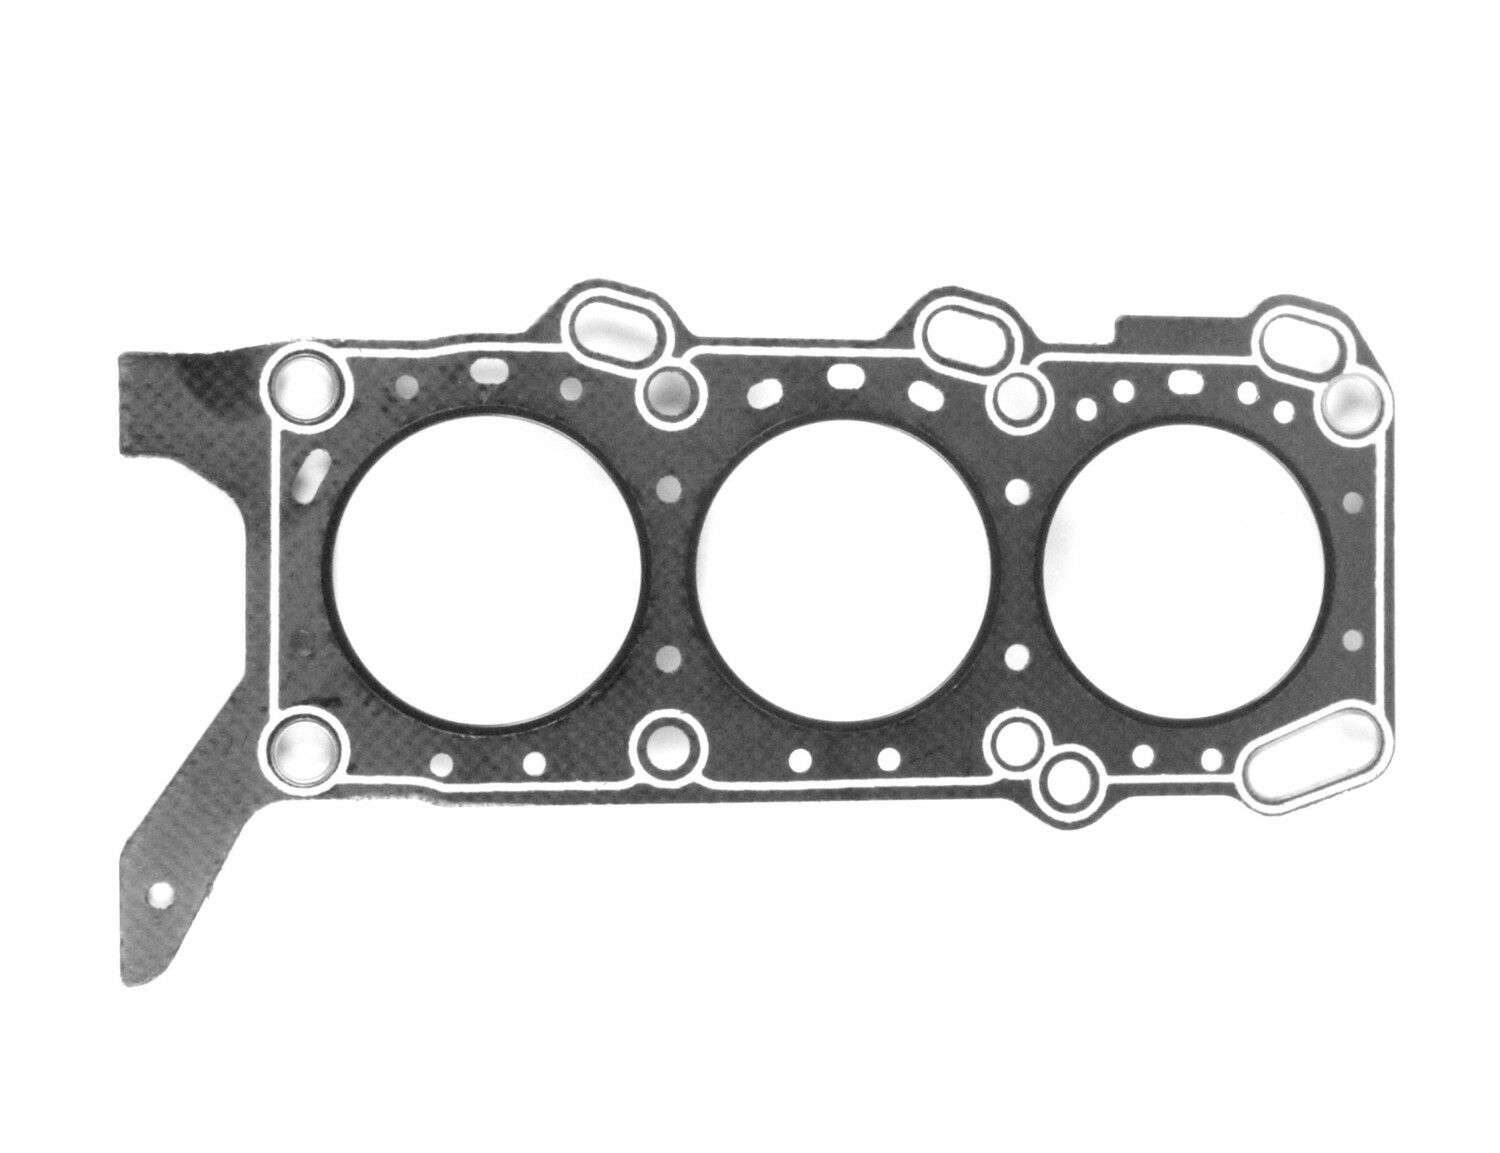 Engine Cylinder Head Gasket-DOHC, 24 Valves DNJ HG523R